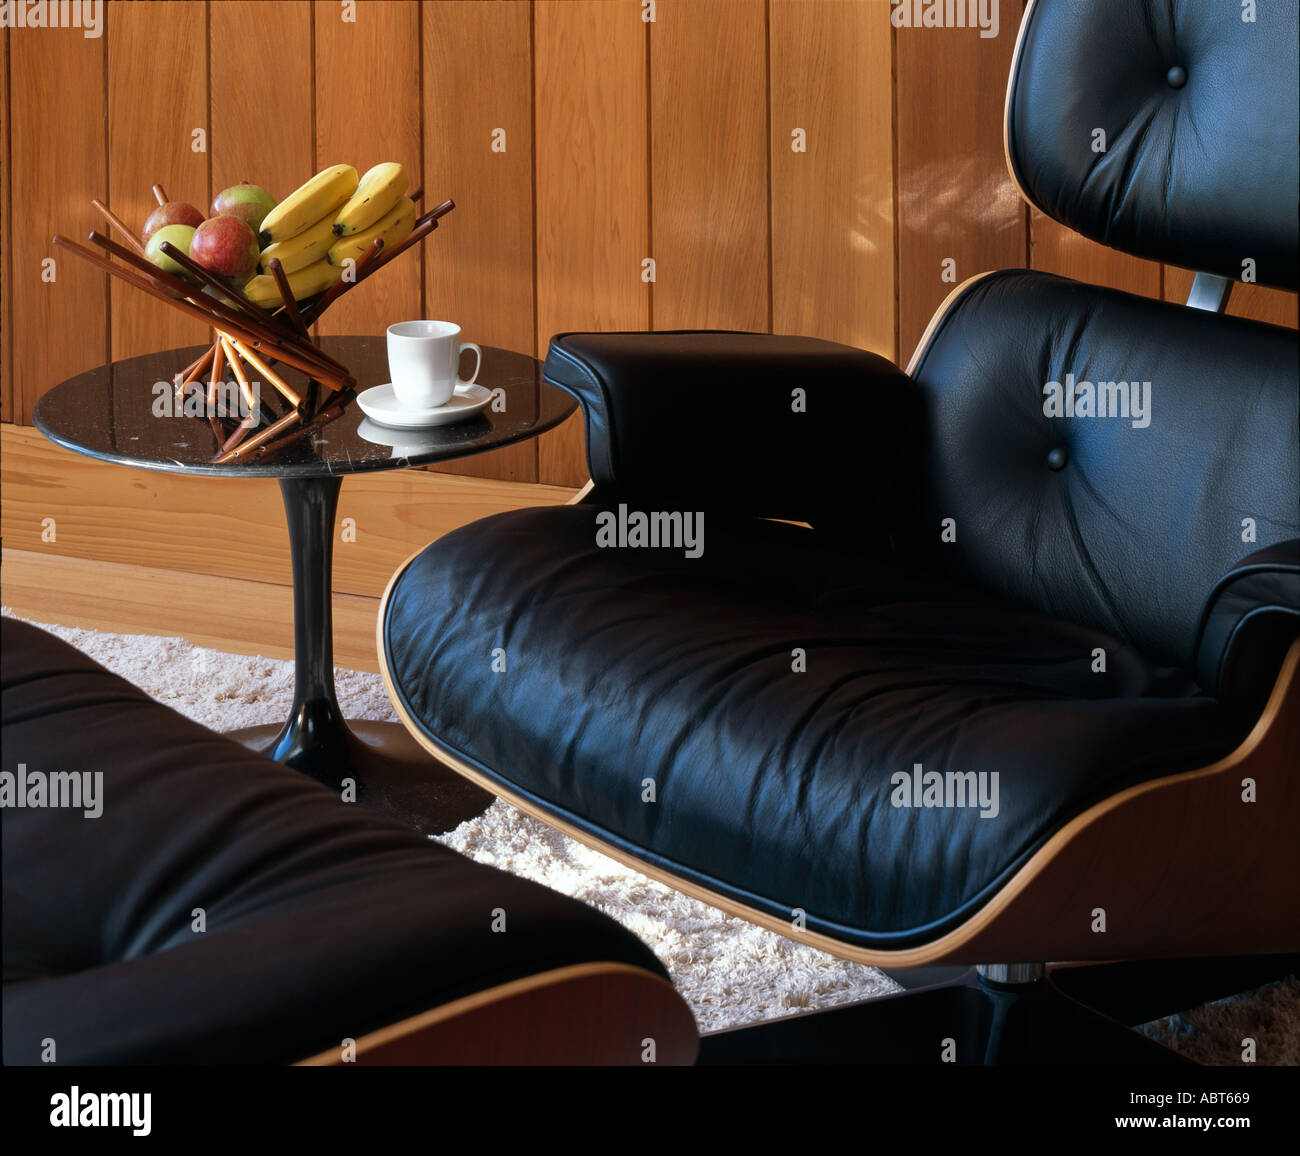 Ro Lounge Sessel Eames Lounge Sessel Stockfotos Eames Lounge Sessel Bilder Alamy